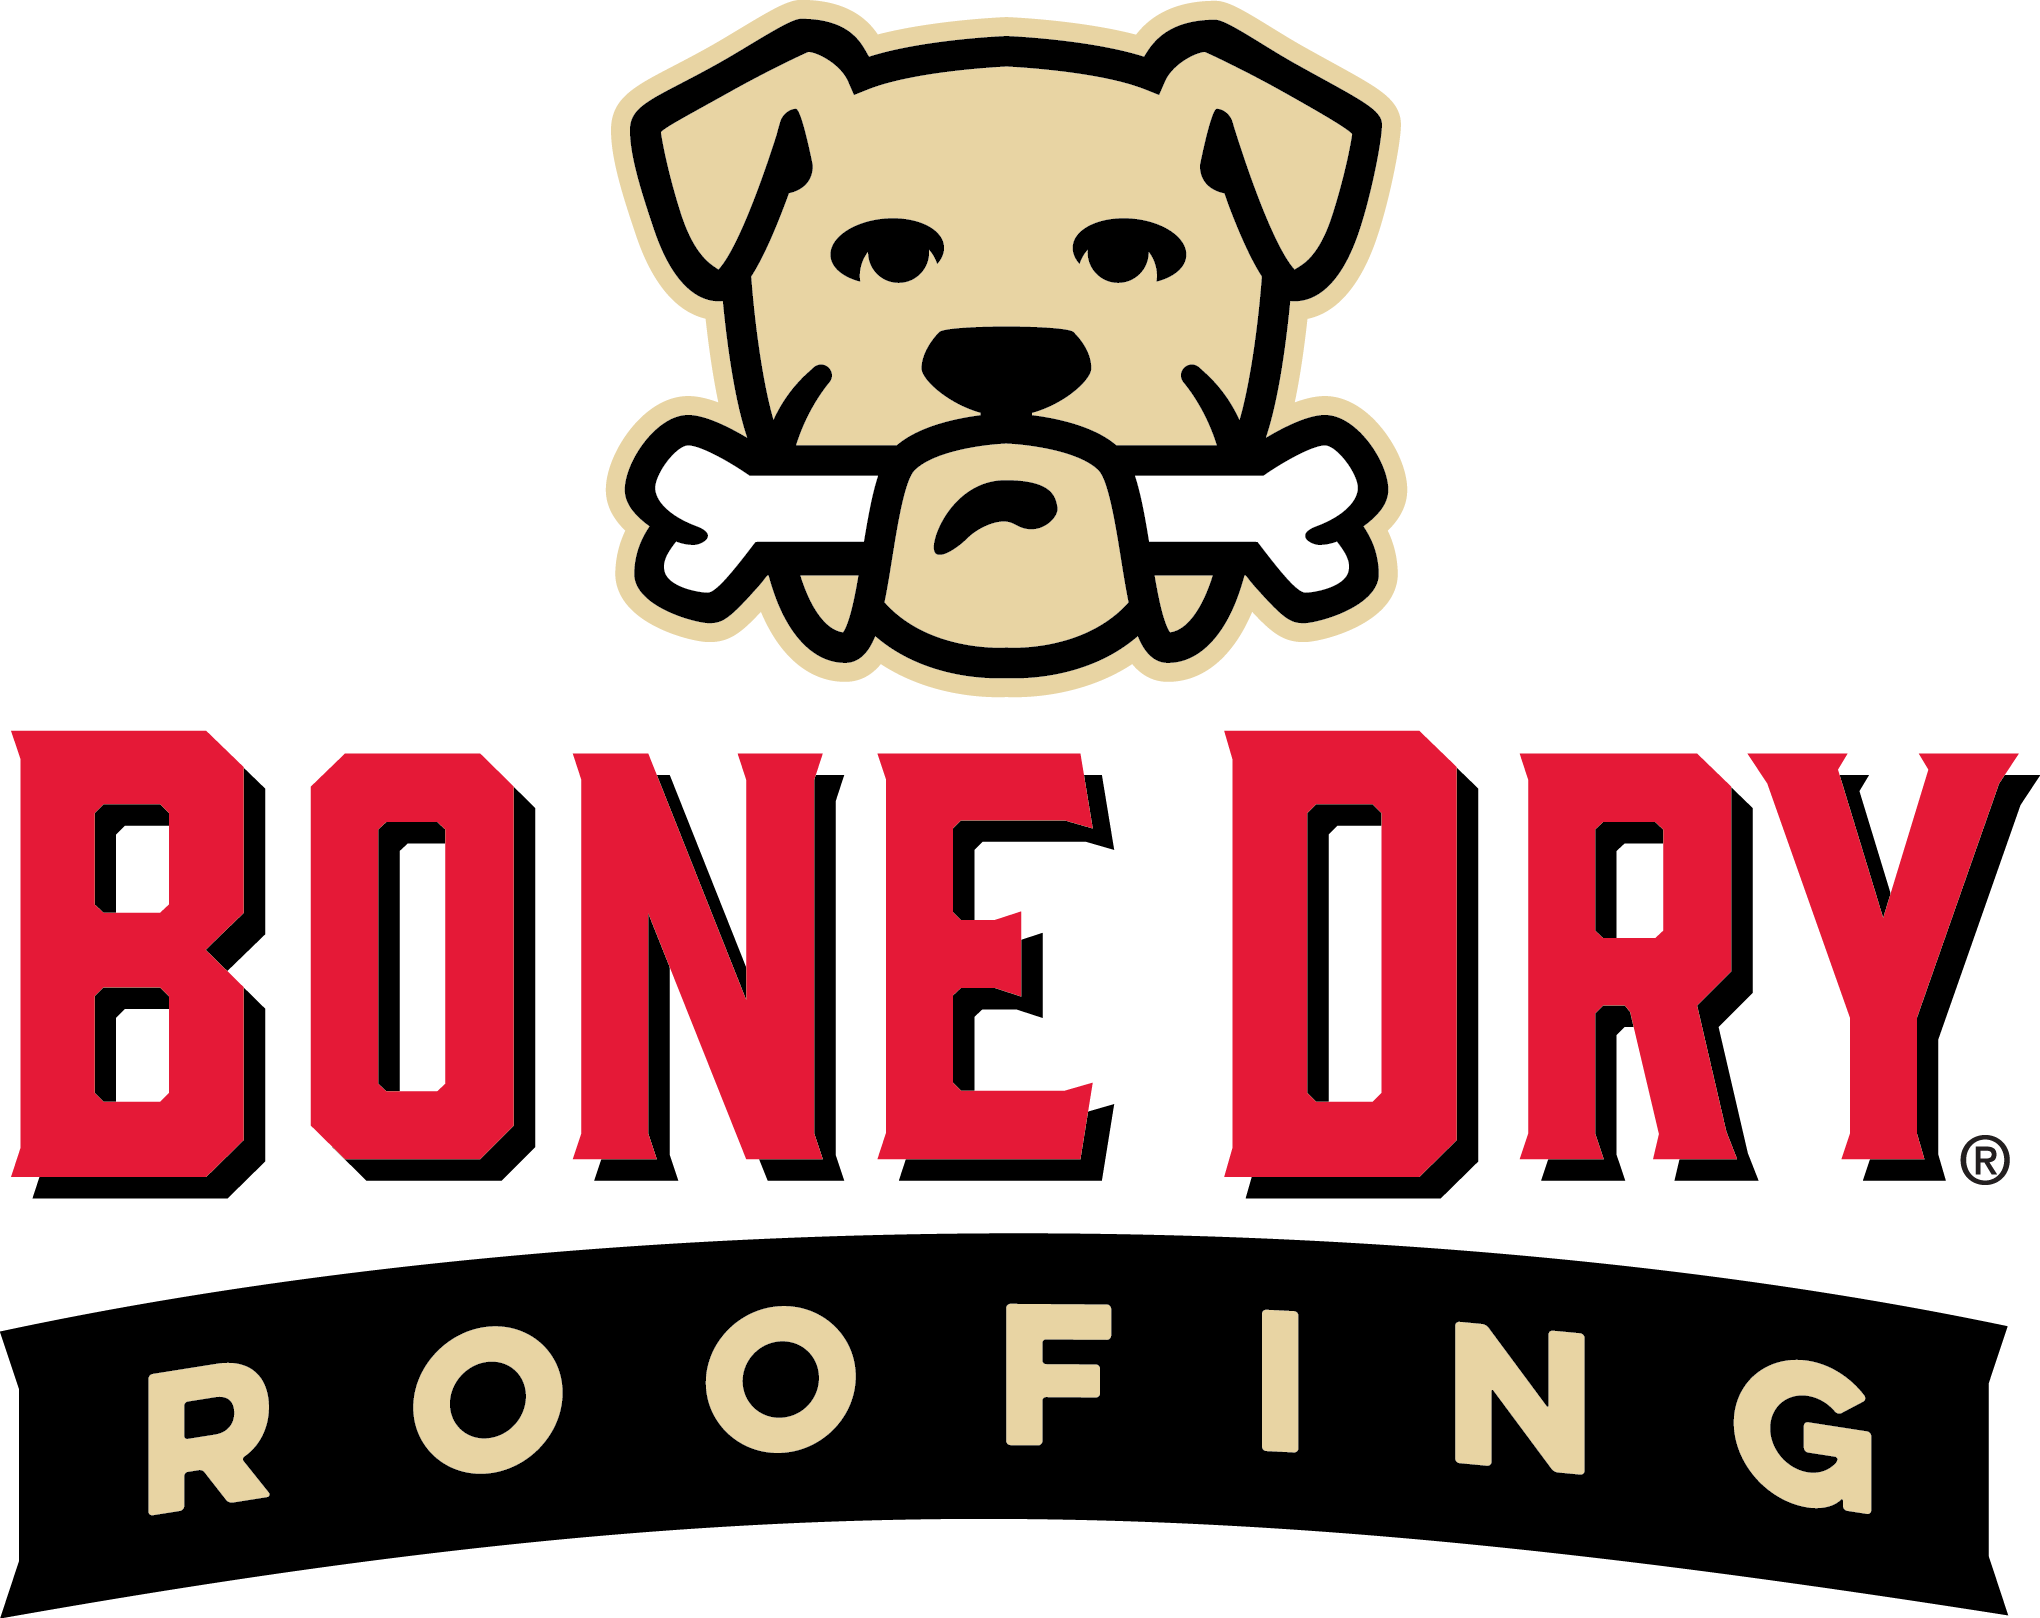 Bone Dry Roofing is a Top-Rated Roofing Company in Nashville, TN